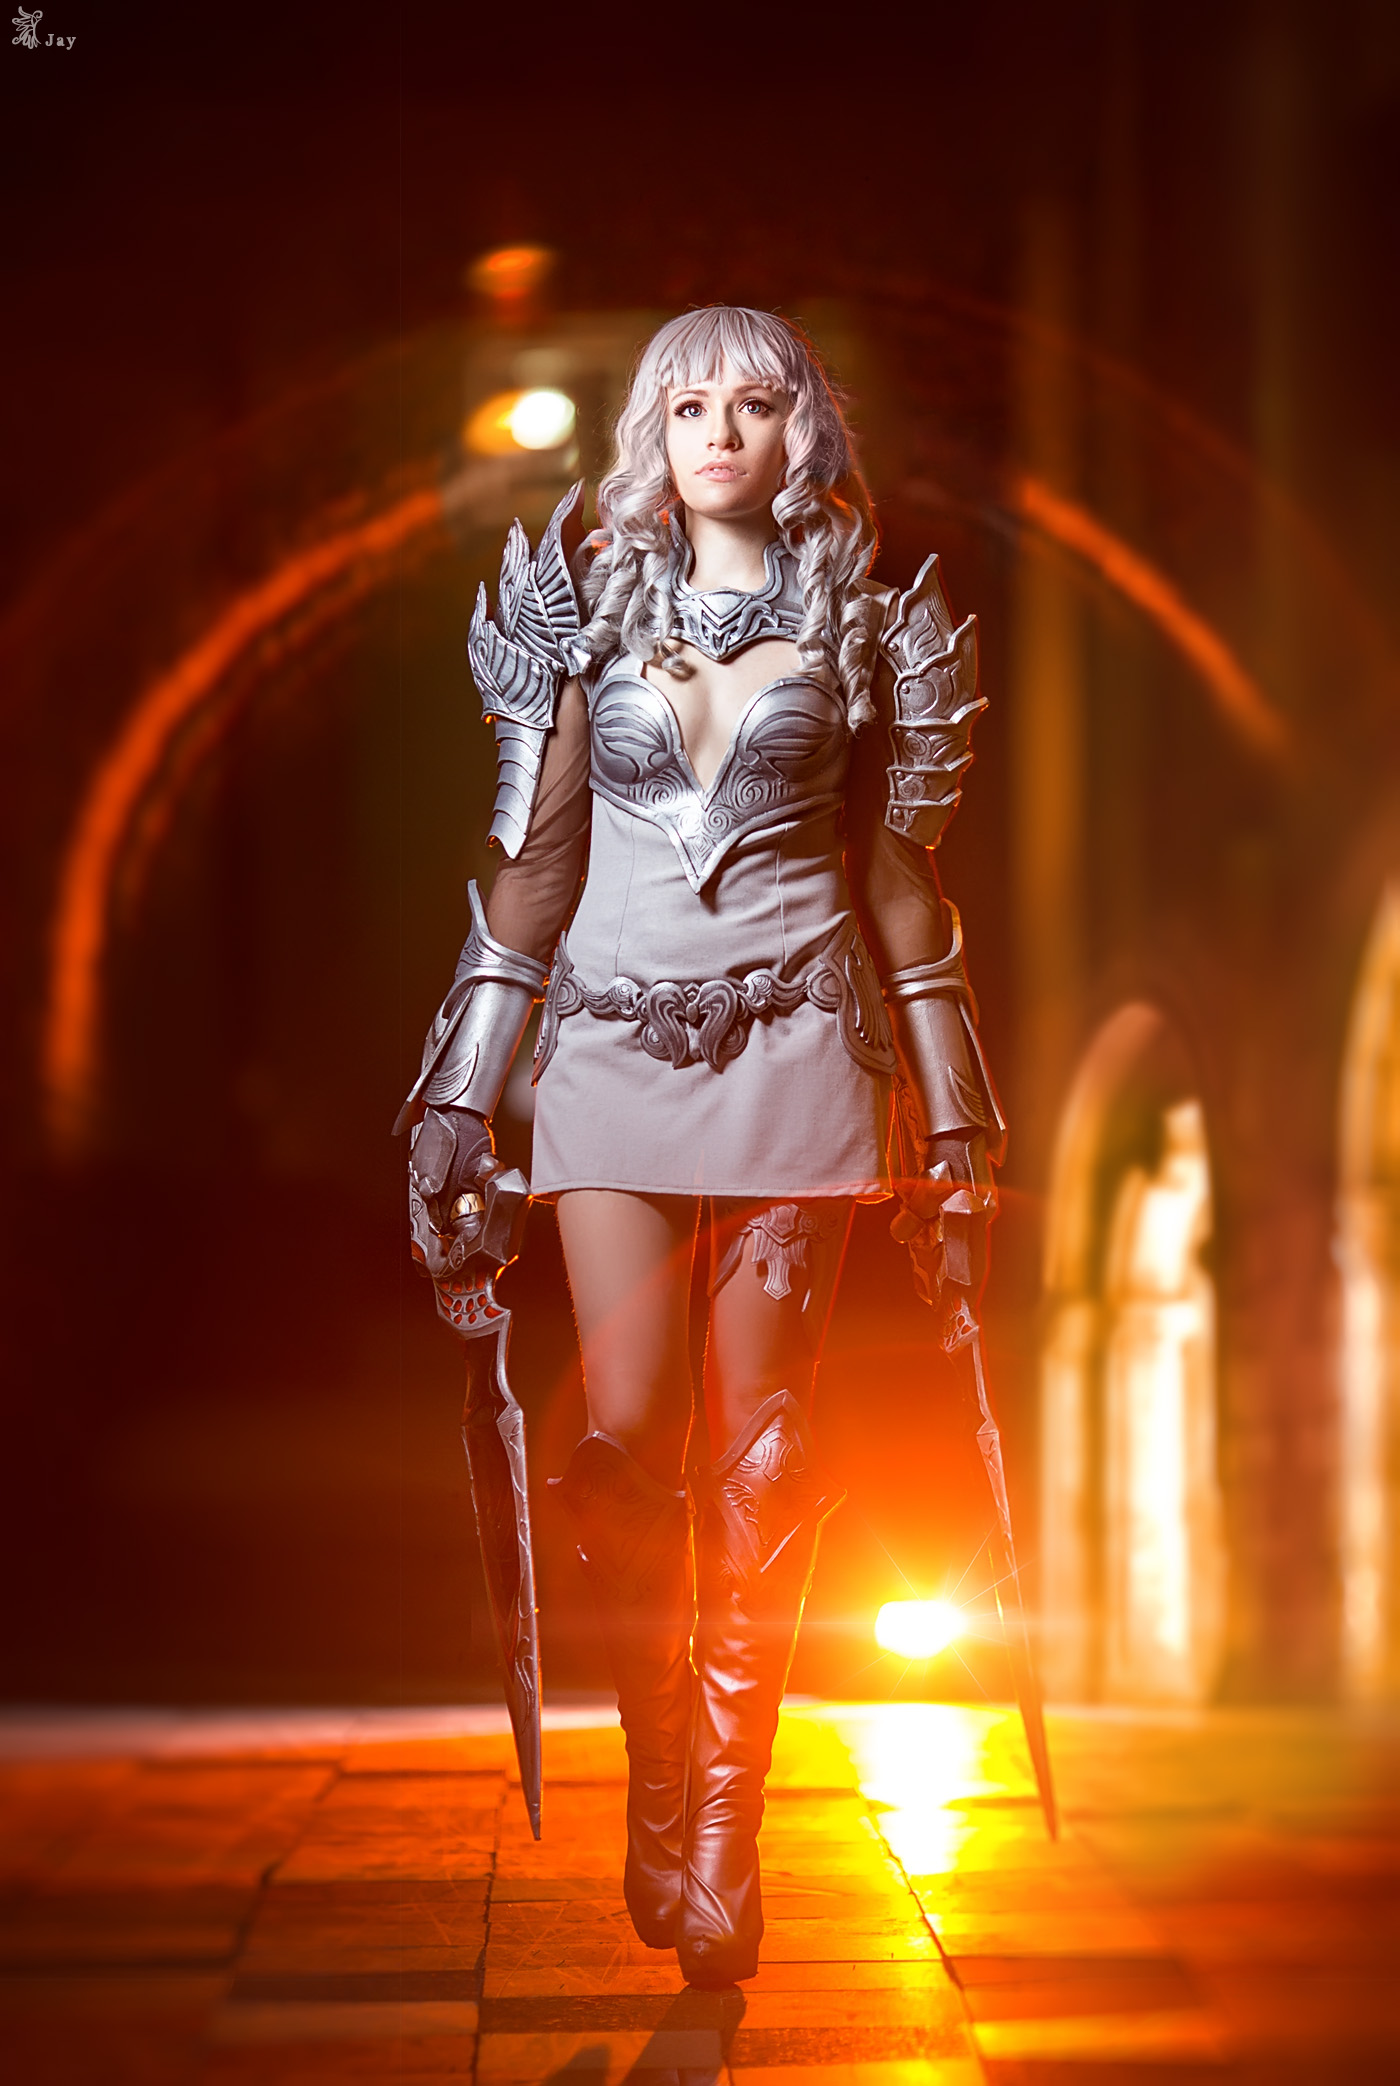 Tera the Next - Human warrior by taygakis